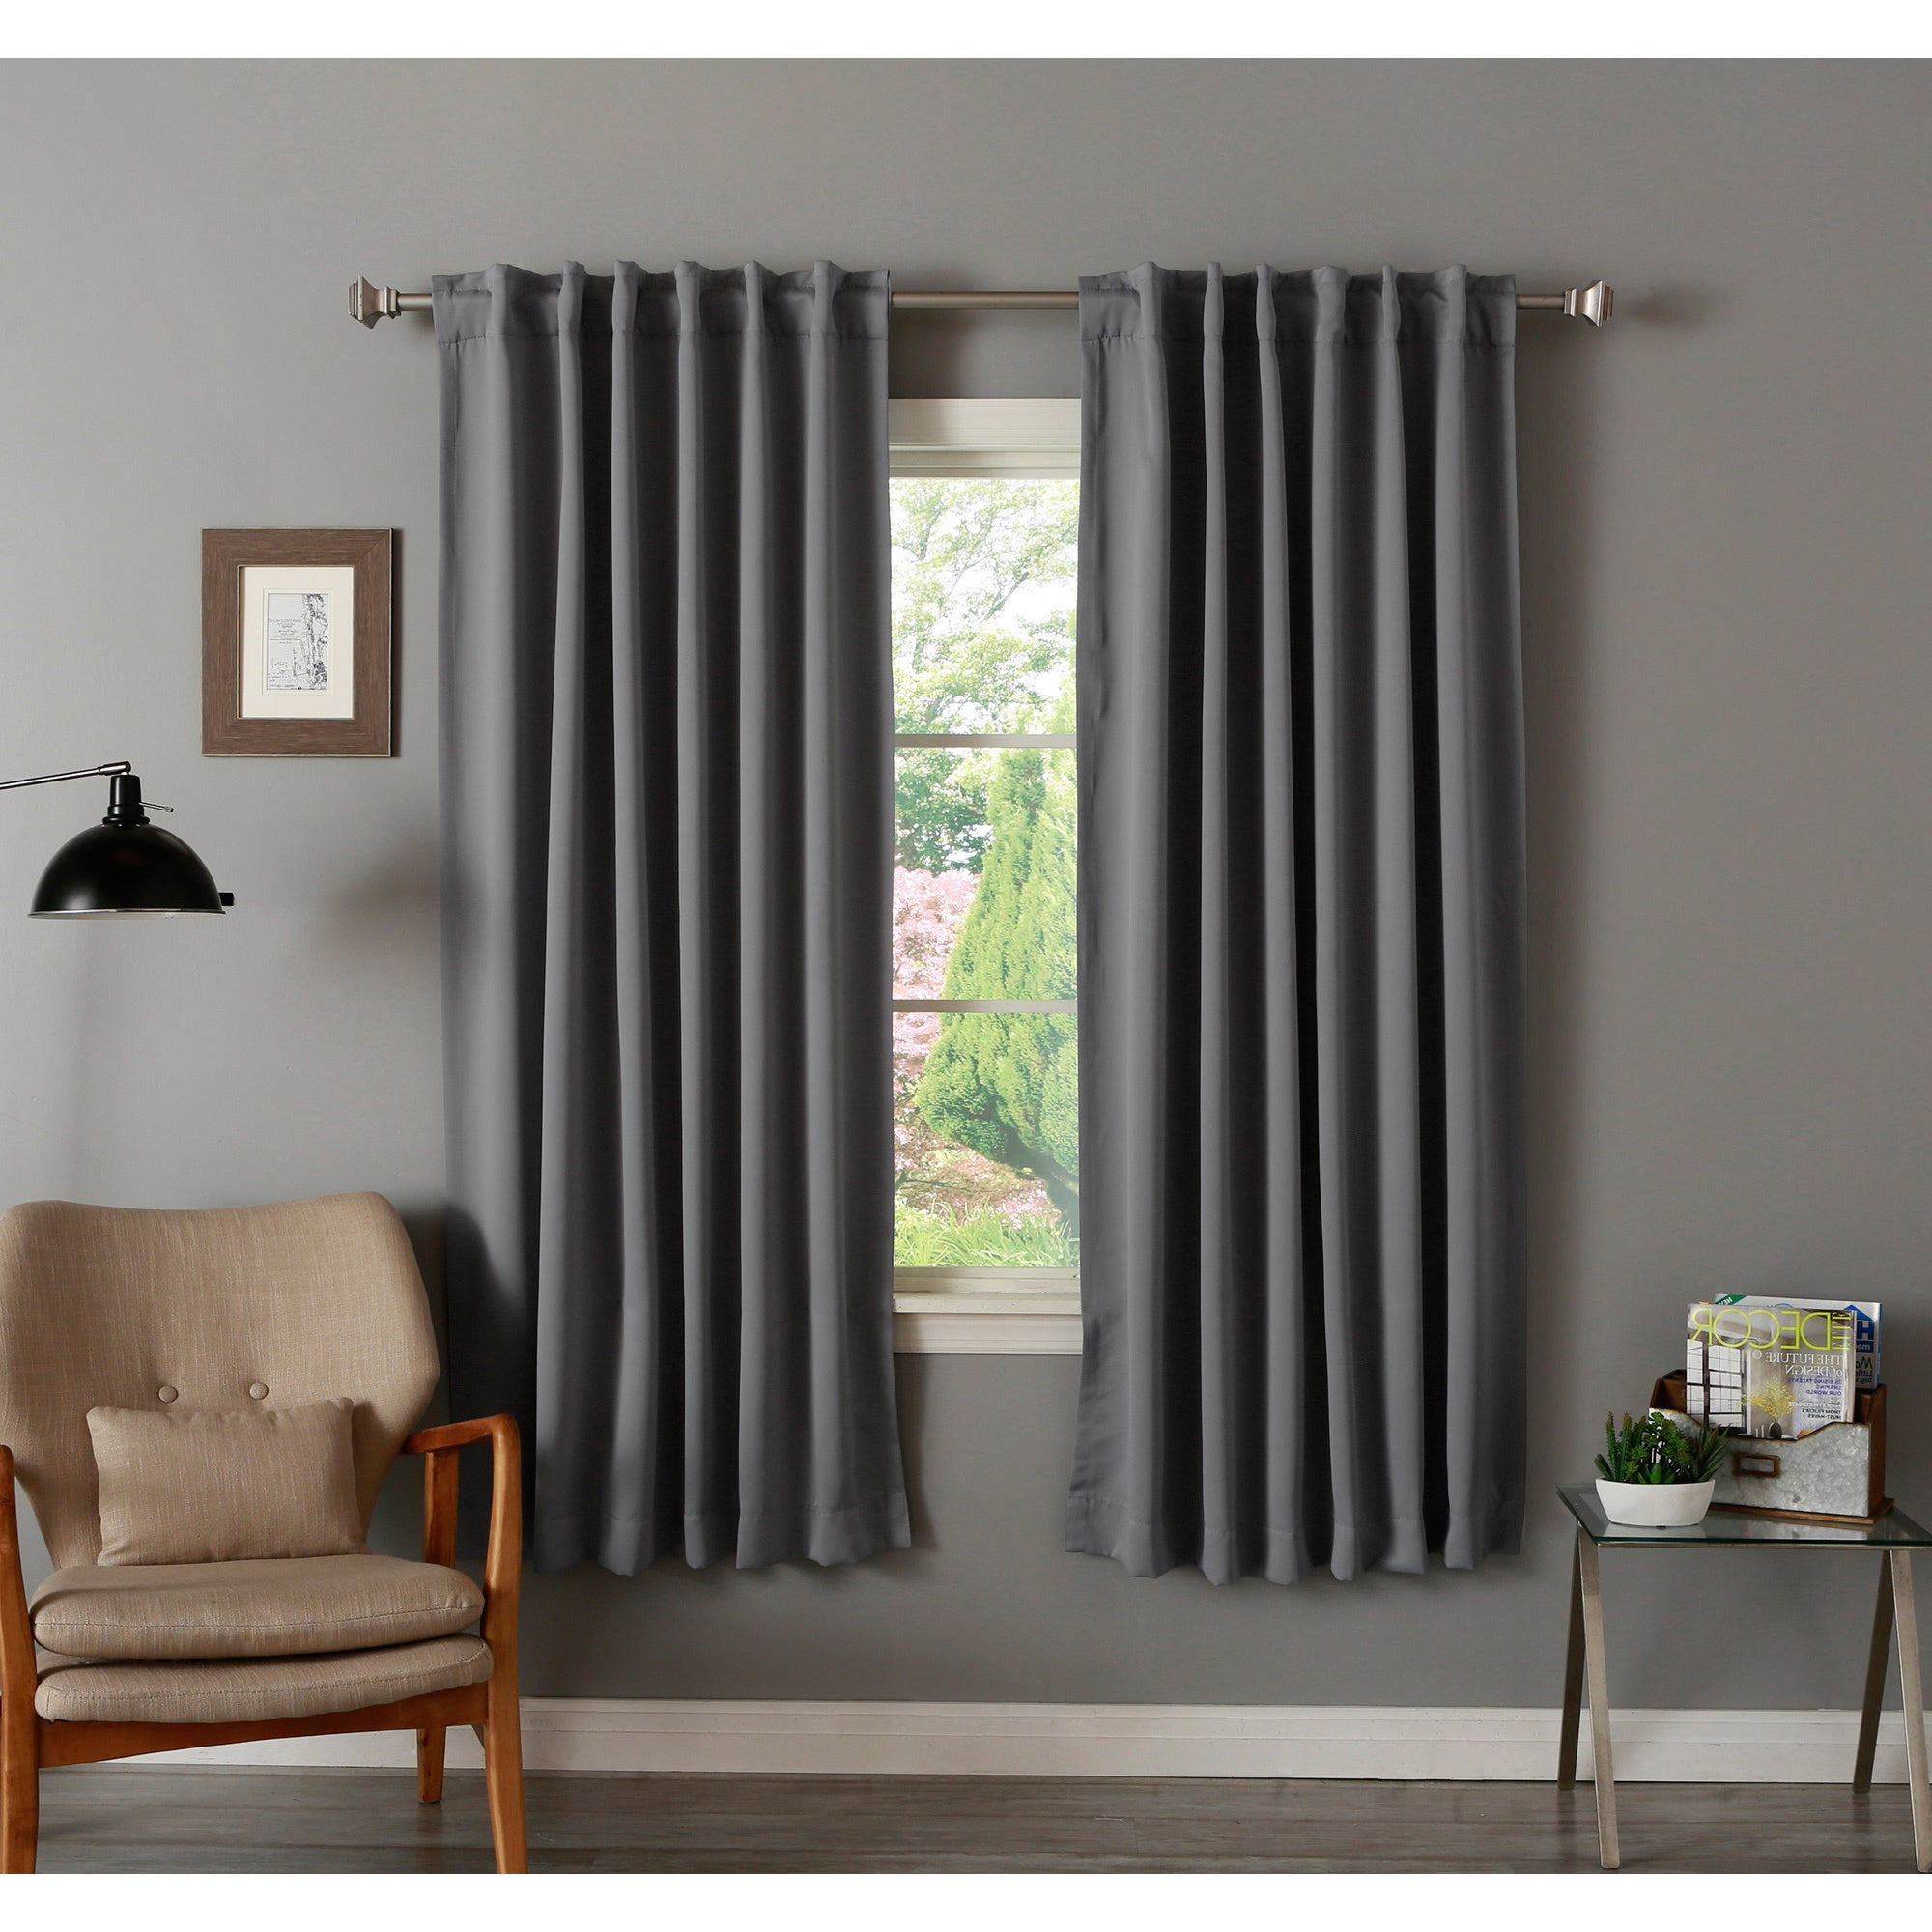 Thermal Insulated Blackout Curtain Panel Pairs With Regard To Most Current Aurora Home Insulated 72 Inch Thermal Blackout Curtain Panel Pair – 52 X  (View 17 of 20)